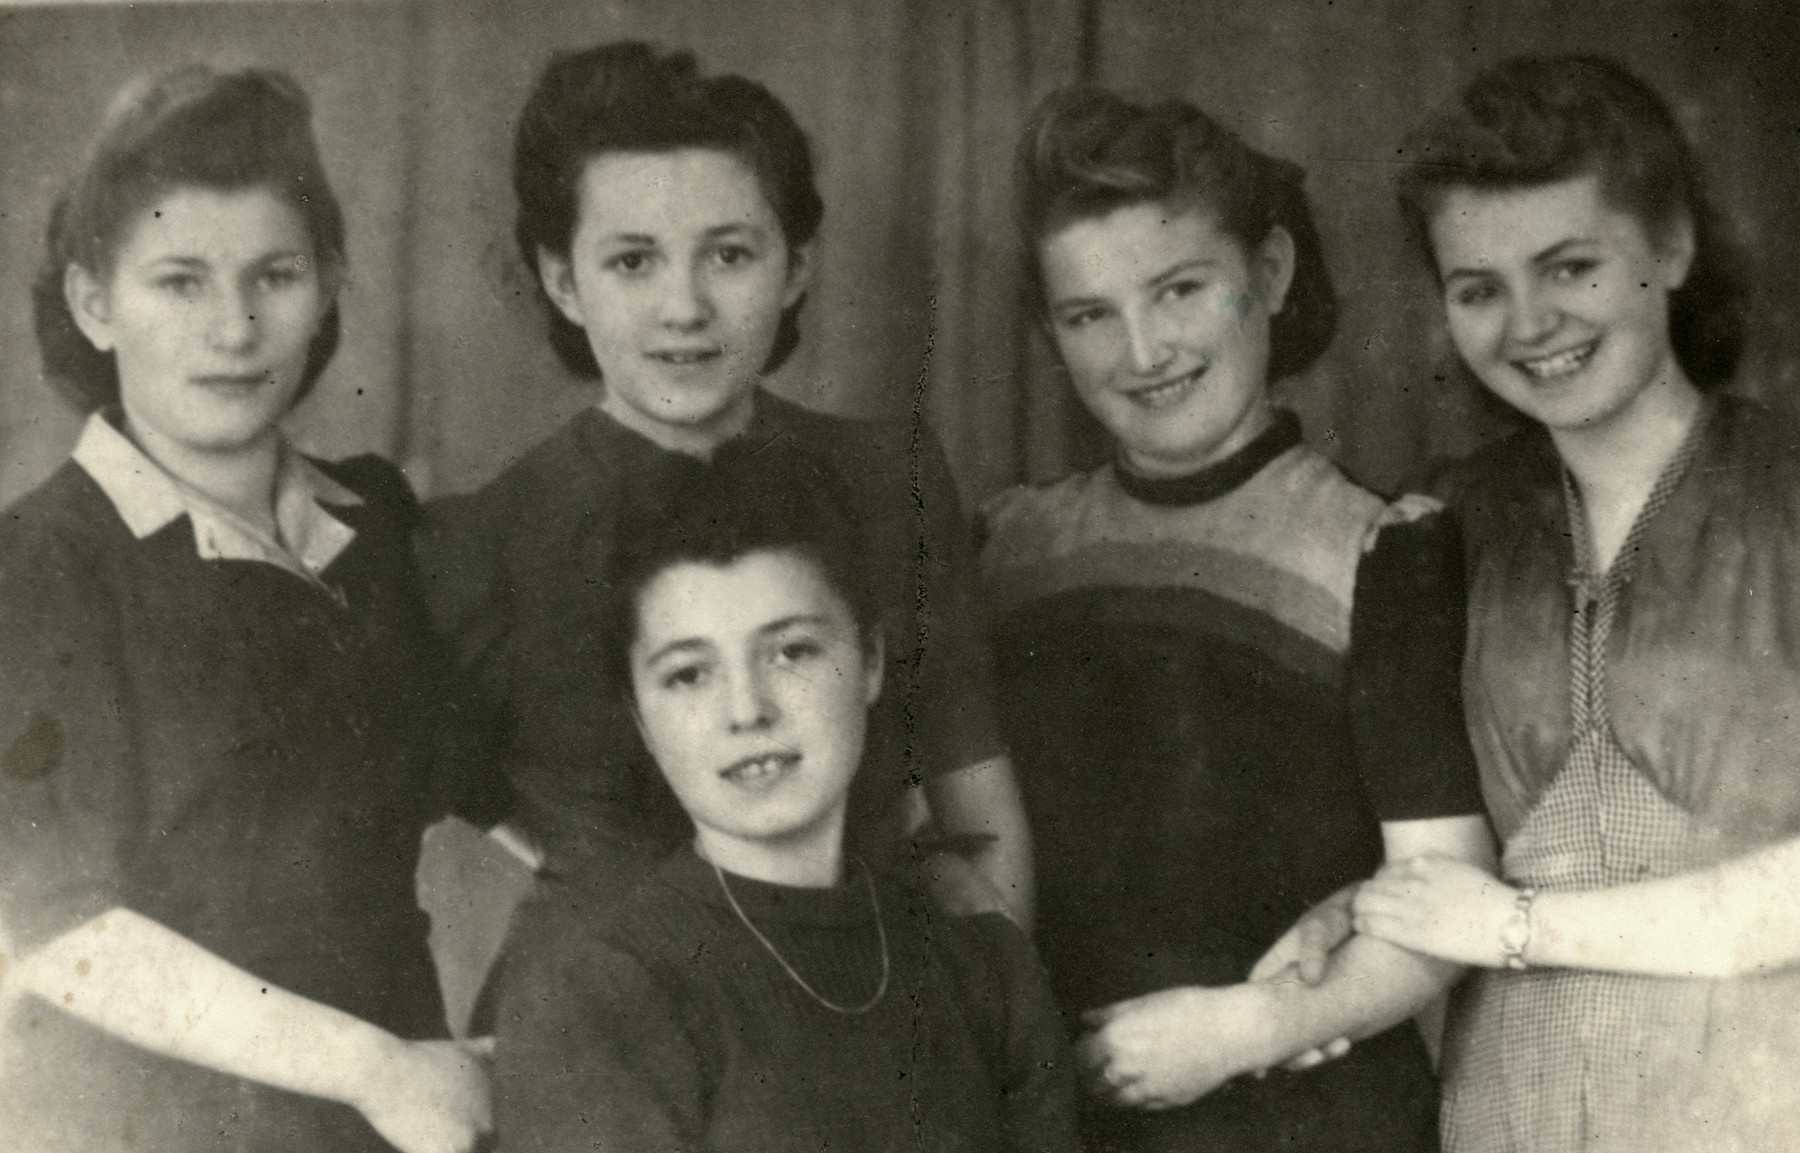 Group portrait of young women in the Chrzanow ghetto.  From left: Leika Laufer, Sala Ferber, Ruchka SiIberberg (?), Mali Lamm, Sita May (Czechoslovakian)